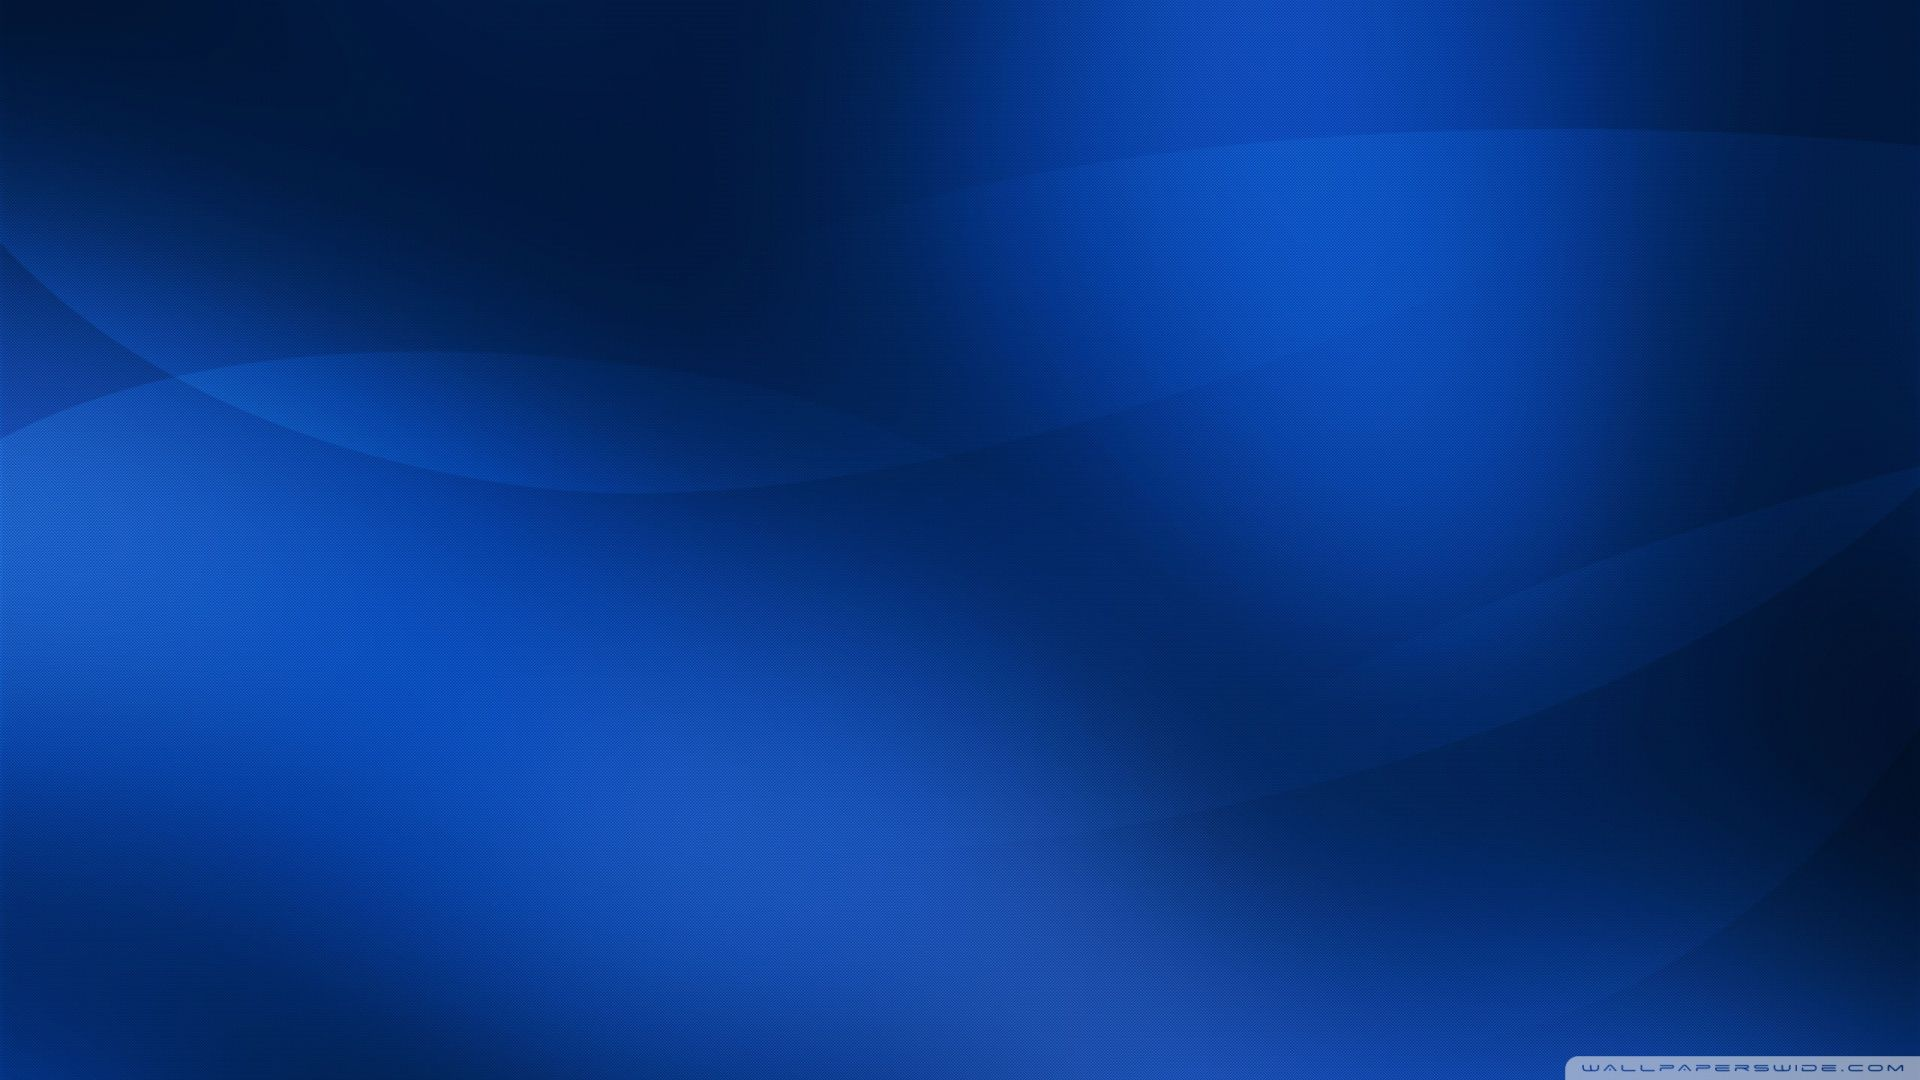 1920x1080 Blue Wallpapers PC # 97952N9 | WallpapersExpert.com